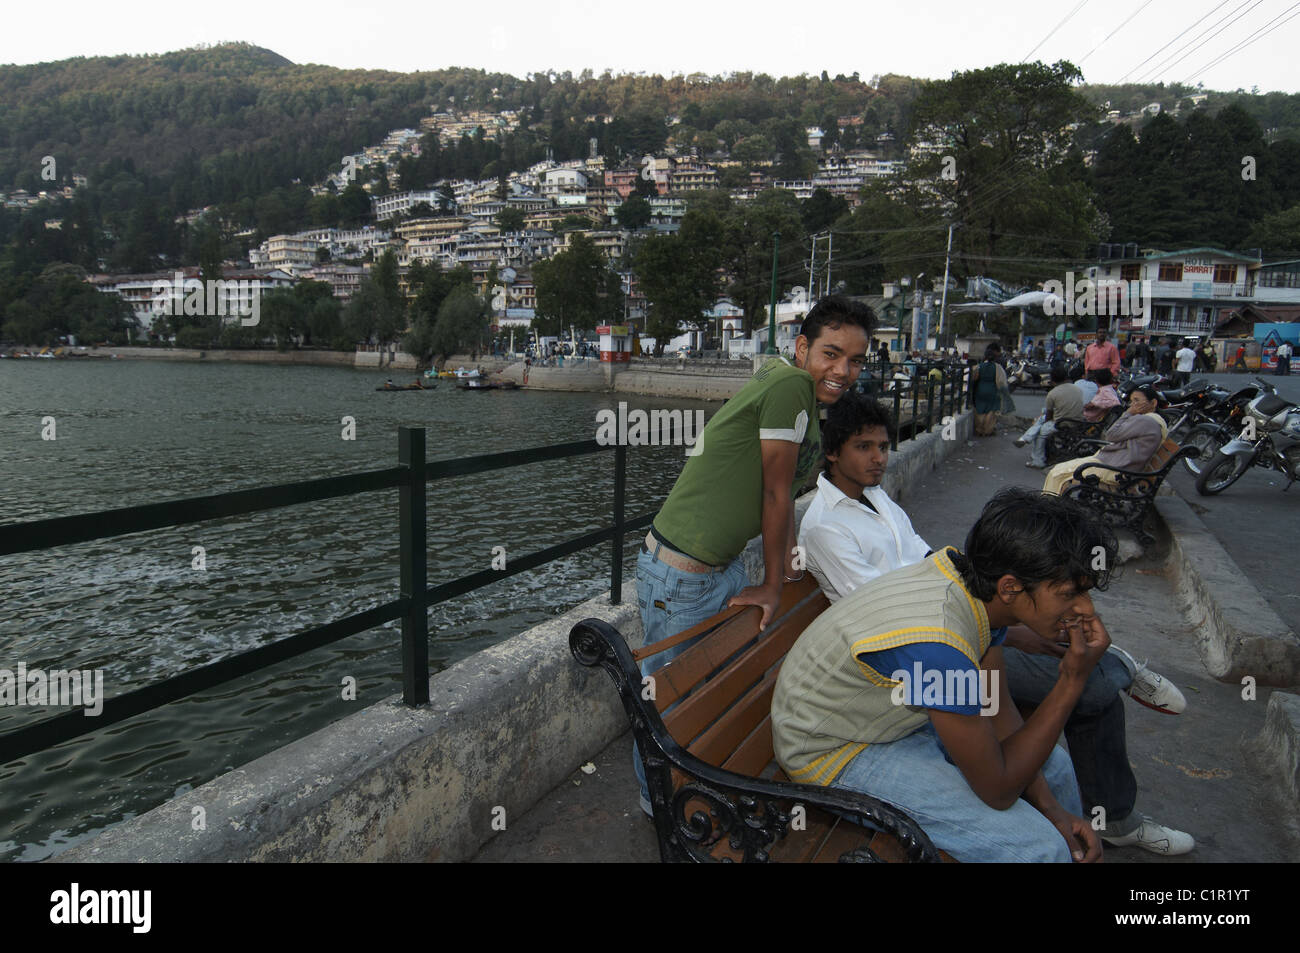 Young people relaxing in by the lake in the mountain village of Nainital in the Himalayan foothills of India - Stock Image